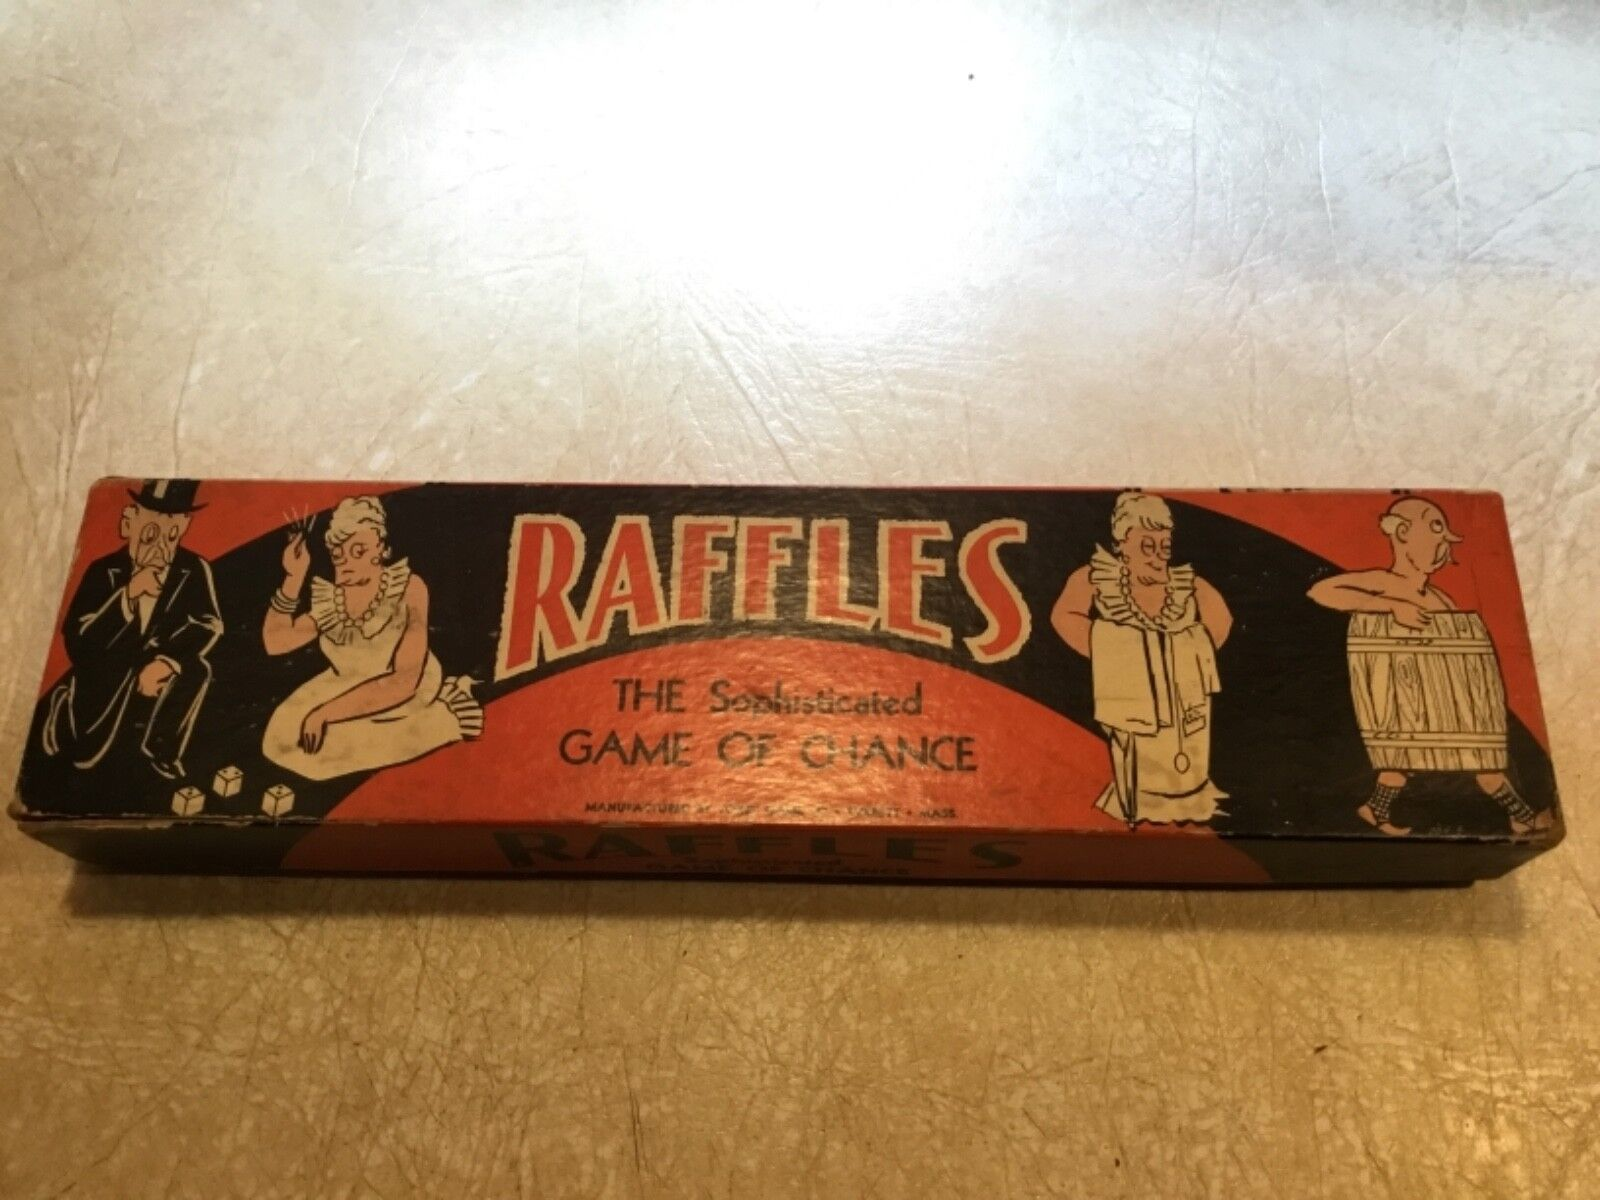 RARE 1 OF KIND 1930  RAFFLES THE SOPHISTICATED GAME OF CHANCE COMPANY 1ST GAME